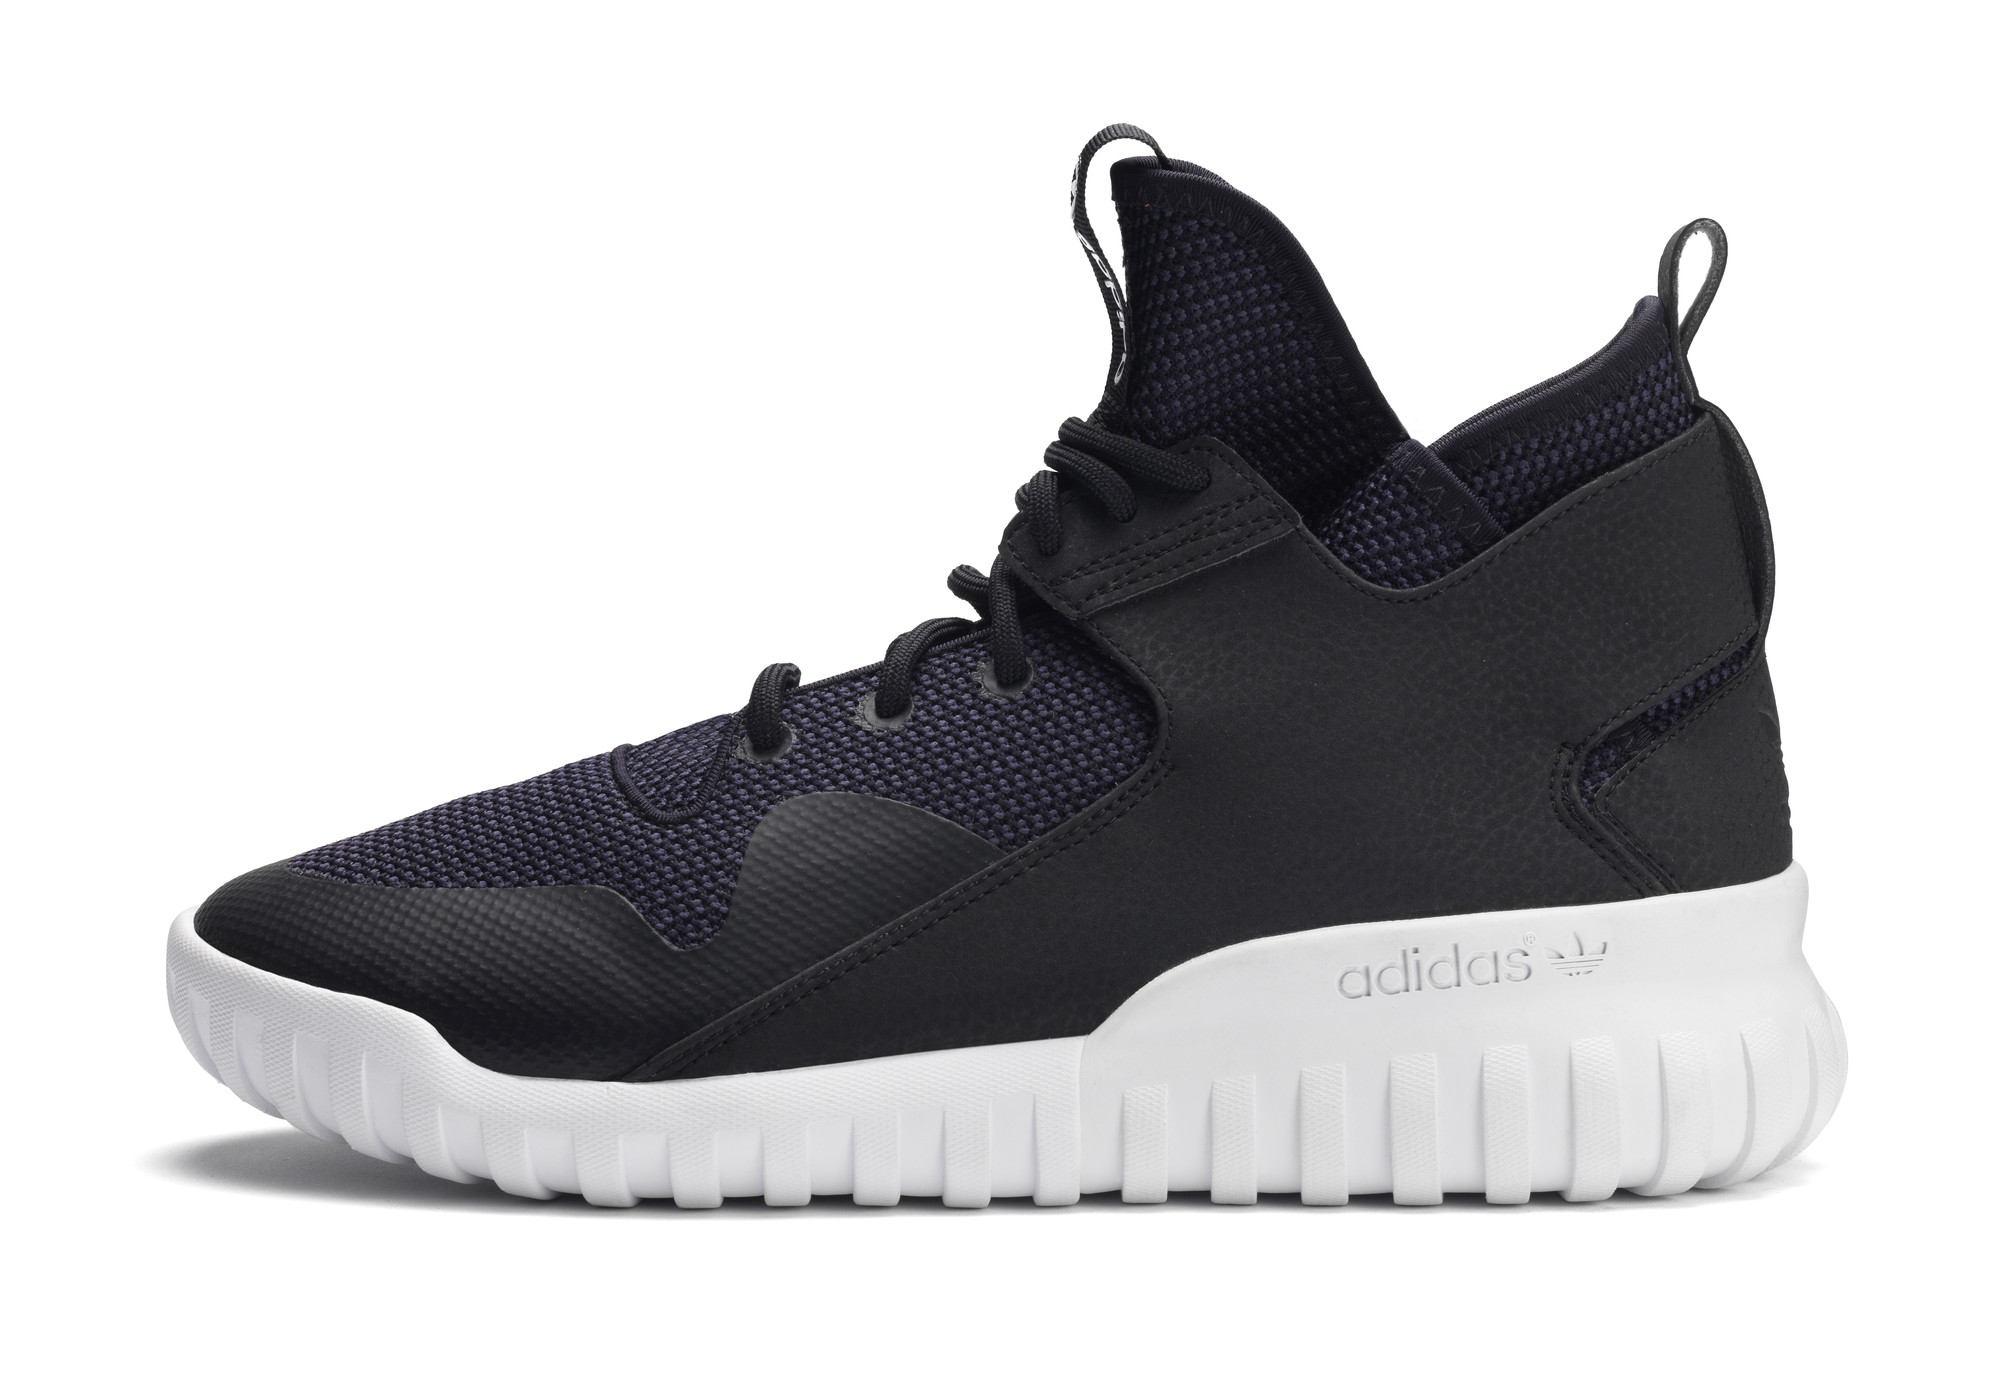 Adidas Tubular X Footlocker